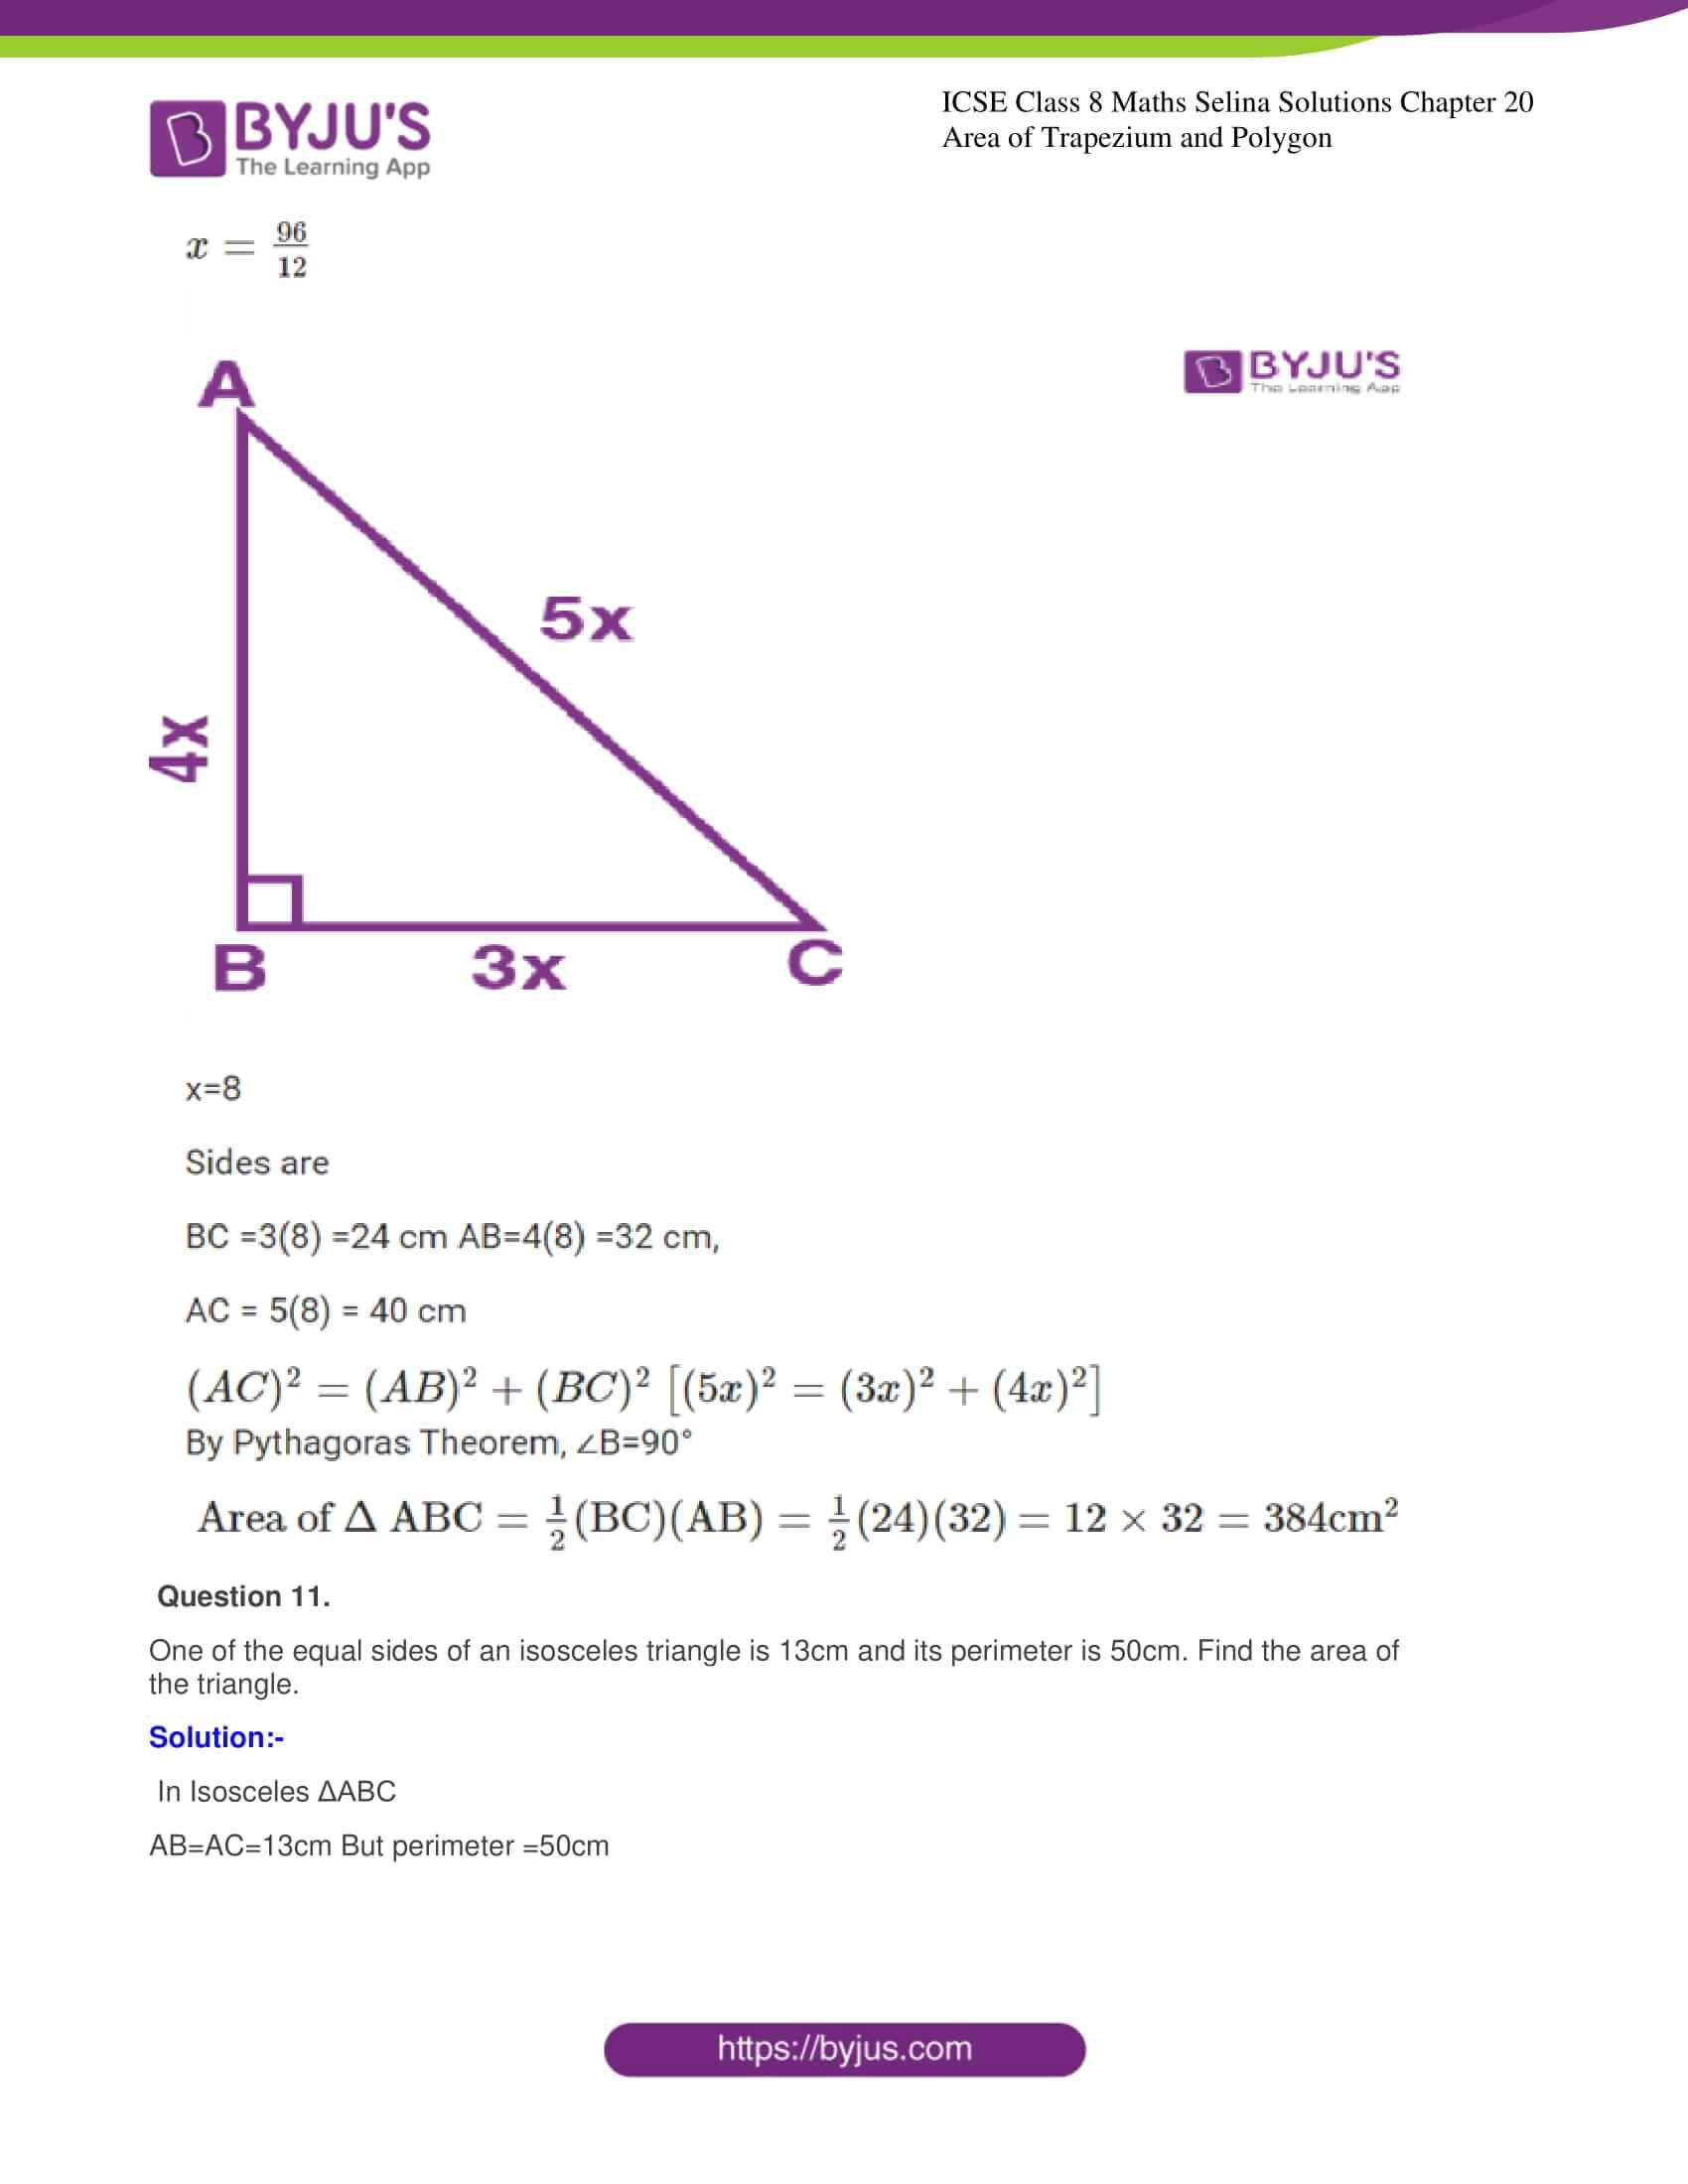 icse class 8 maths may3 selina solutions chapter 20 area of trapezium and polygon 07